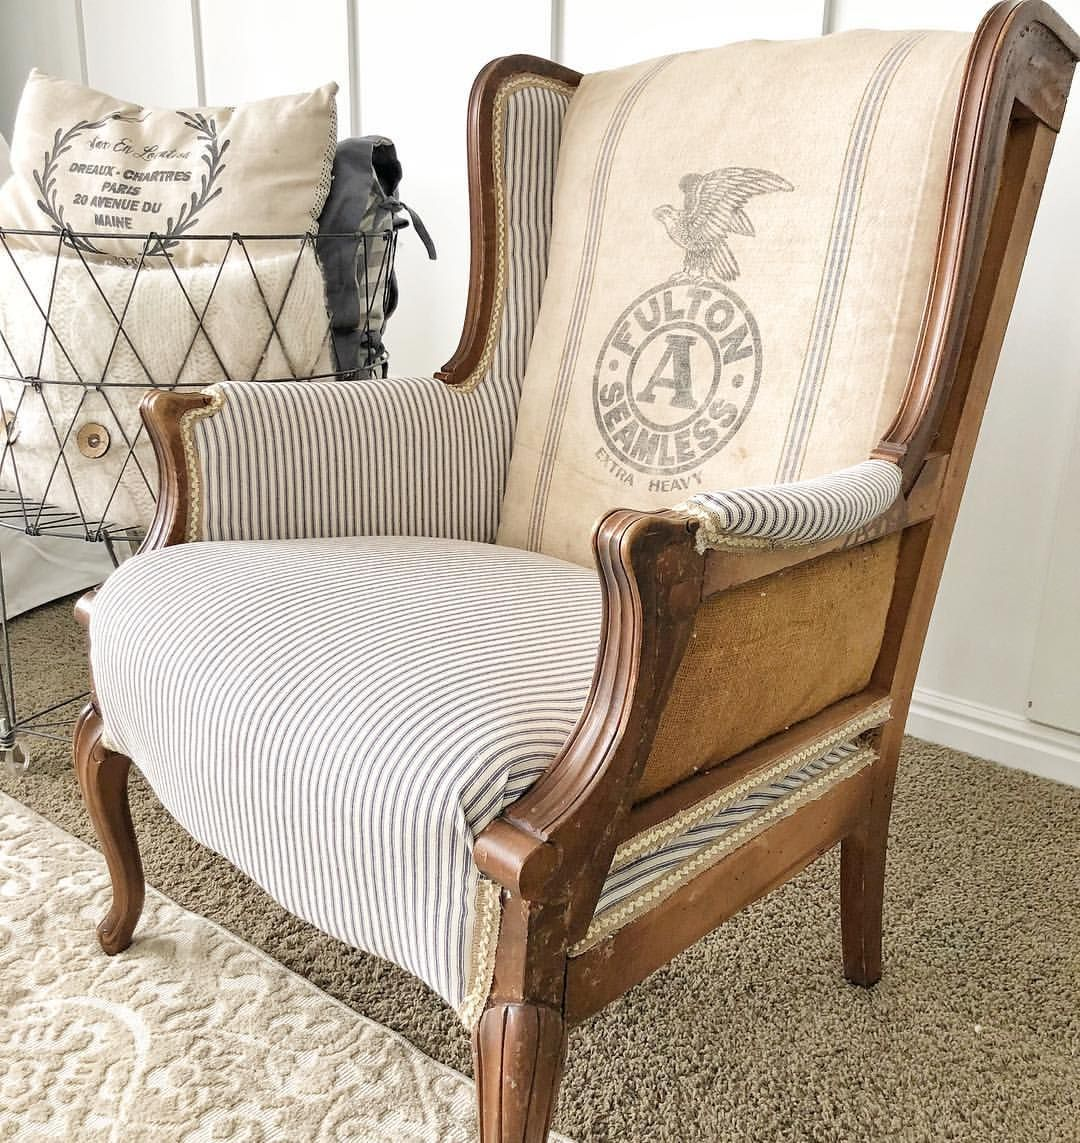 Christa Pirl Furniture Interiors Latest Transformation Antique Sofa Reupholstered Design By Furniture Restoration Projects Sofa Reupholstered Antique Sofa